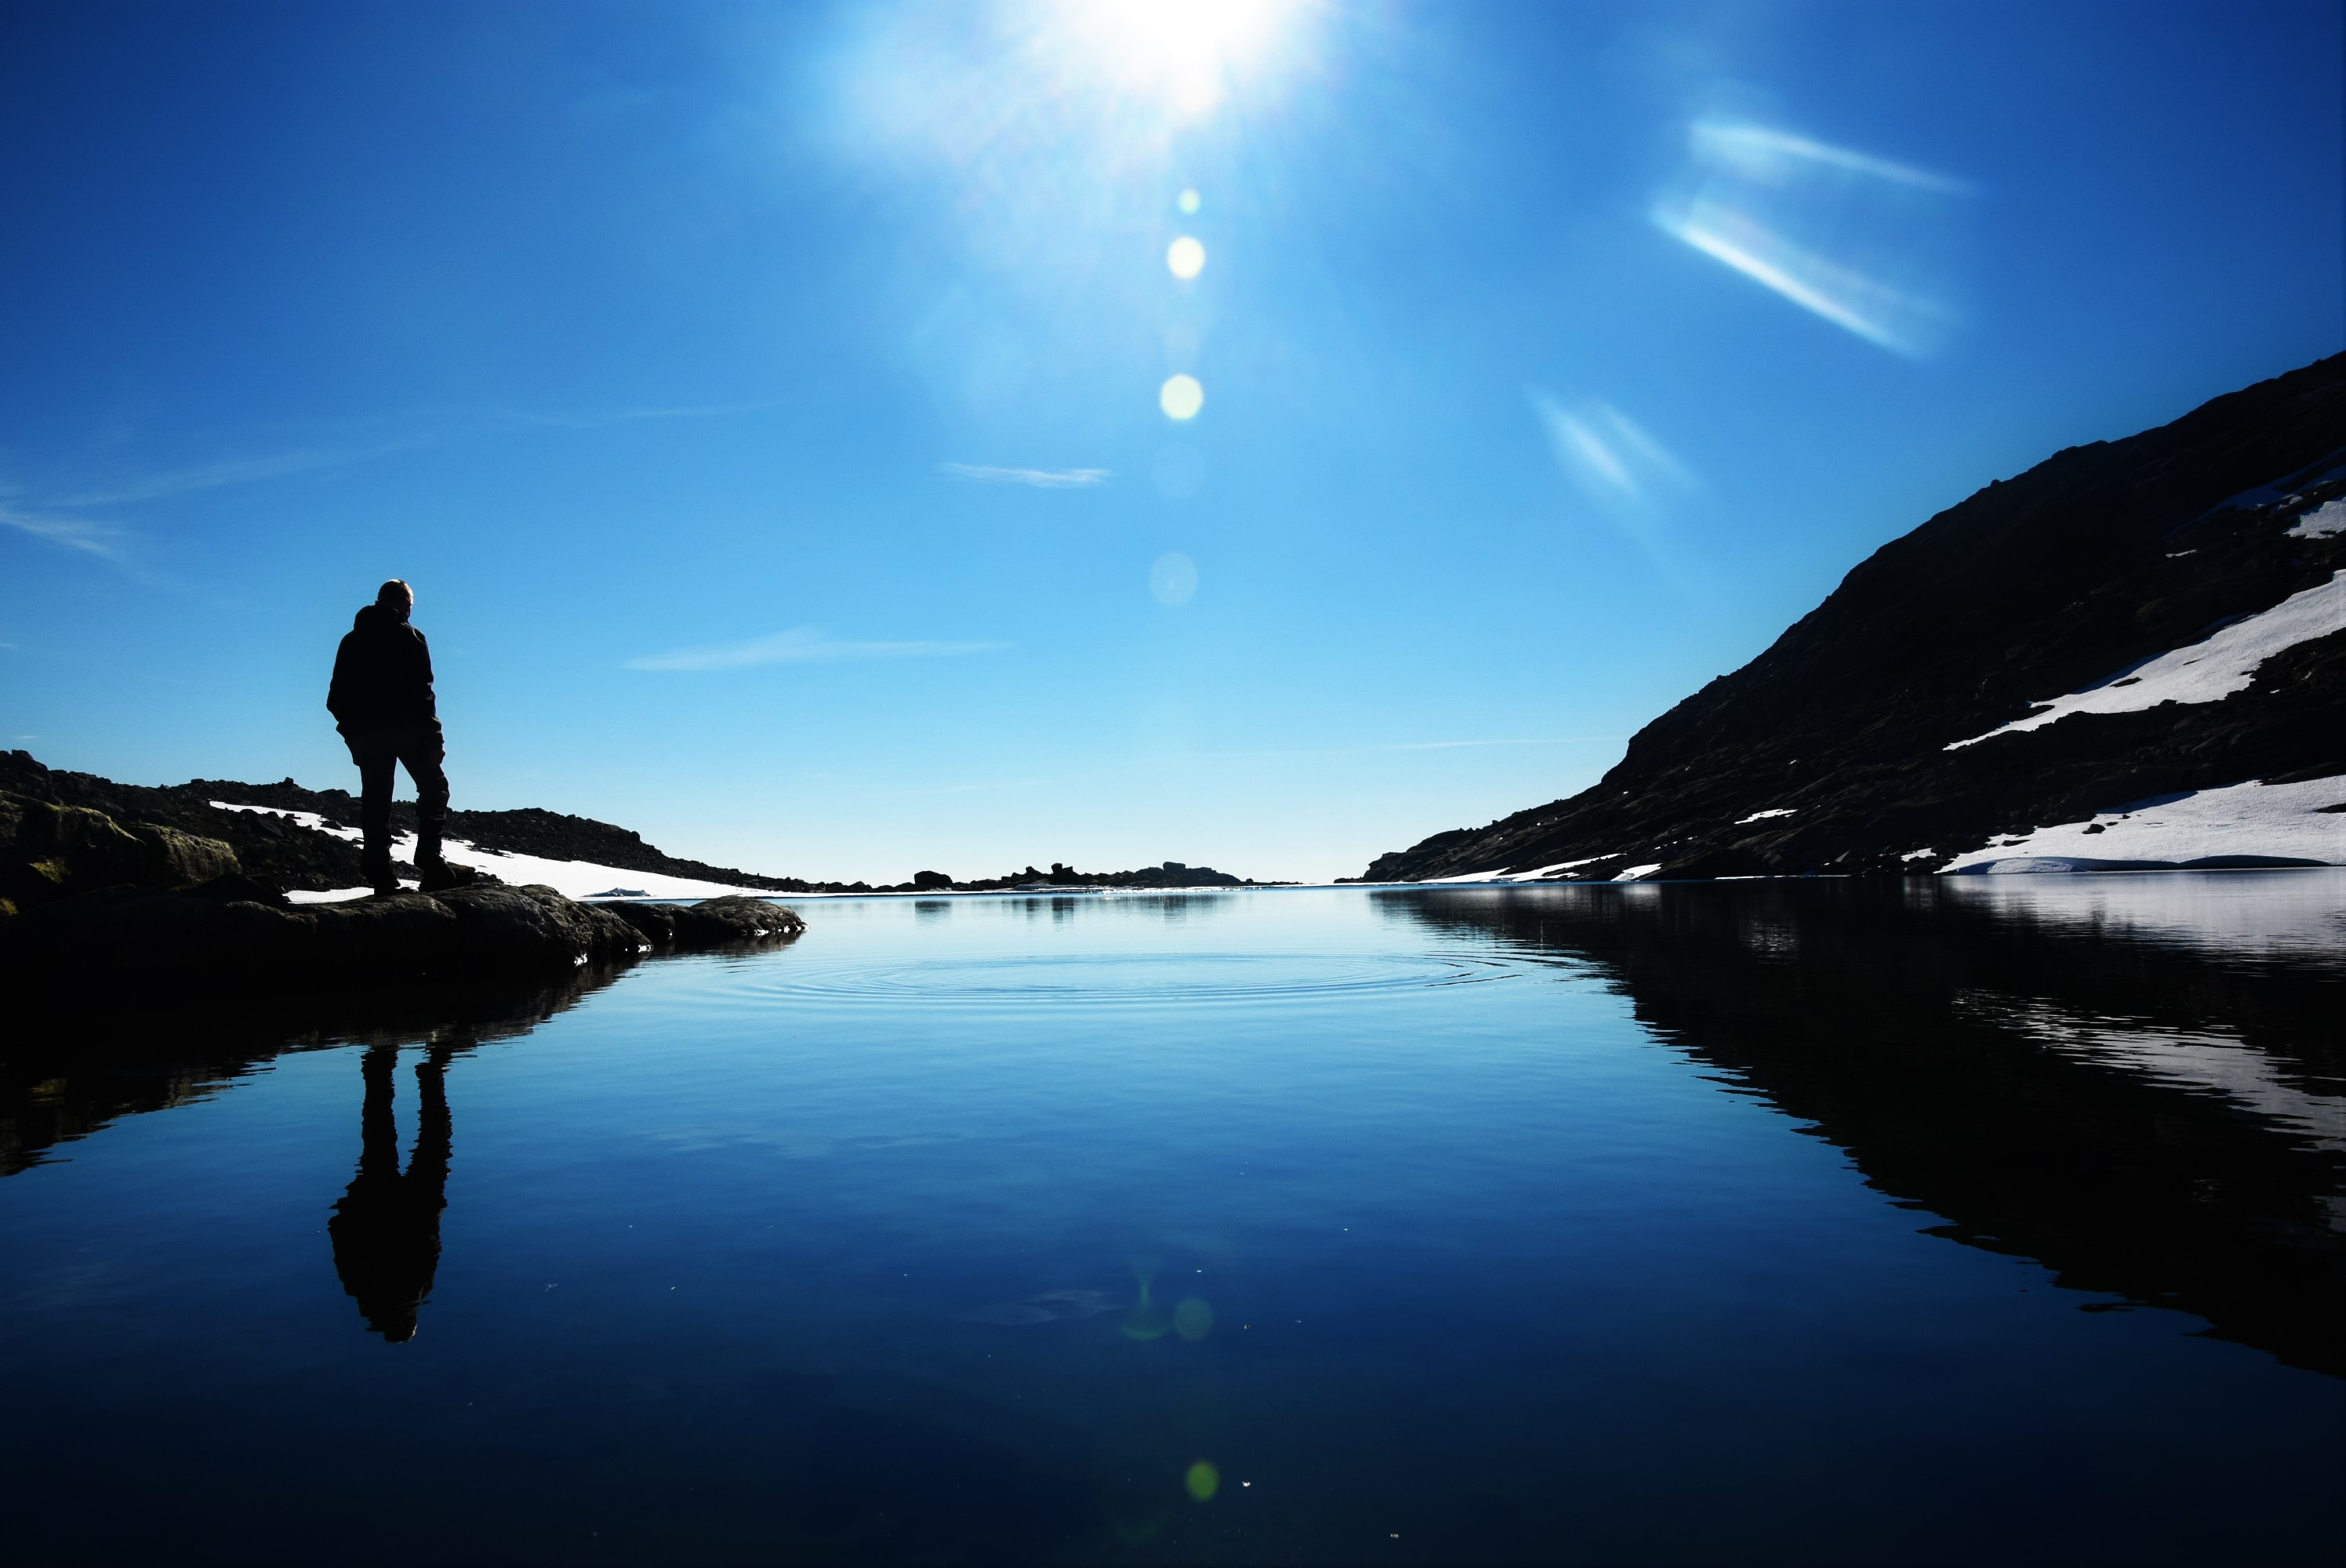 The silhouette of person at a lake looking at the sun and a mountain